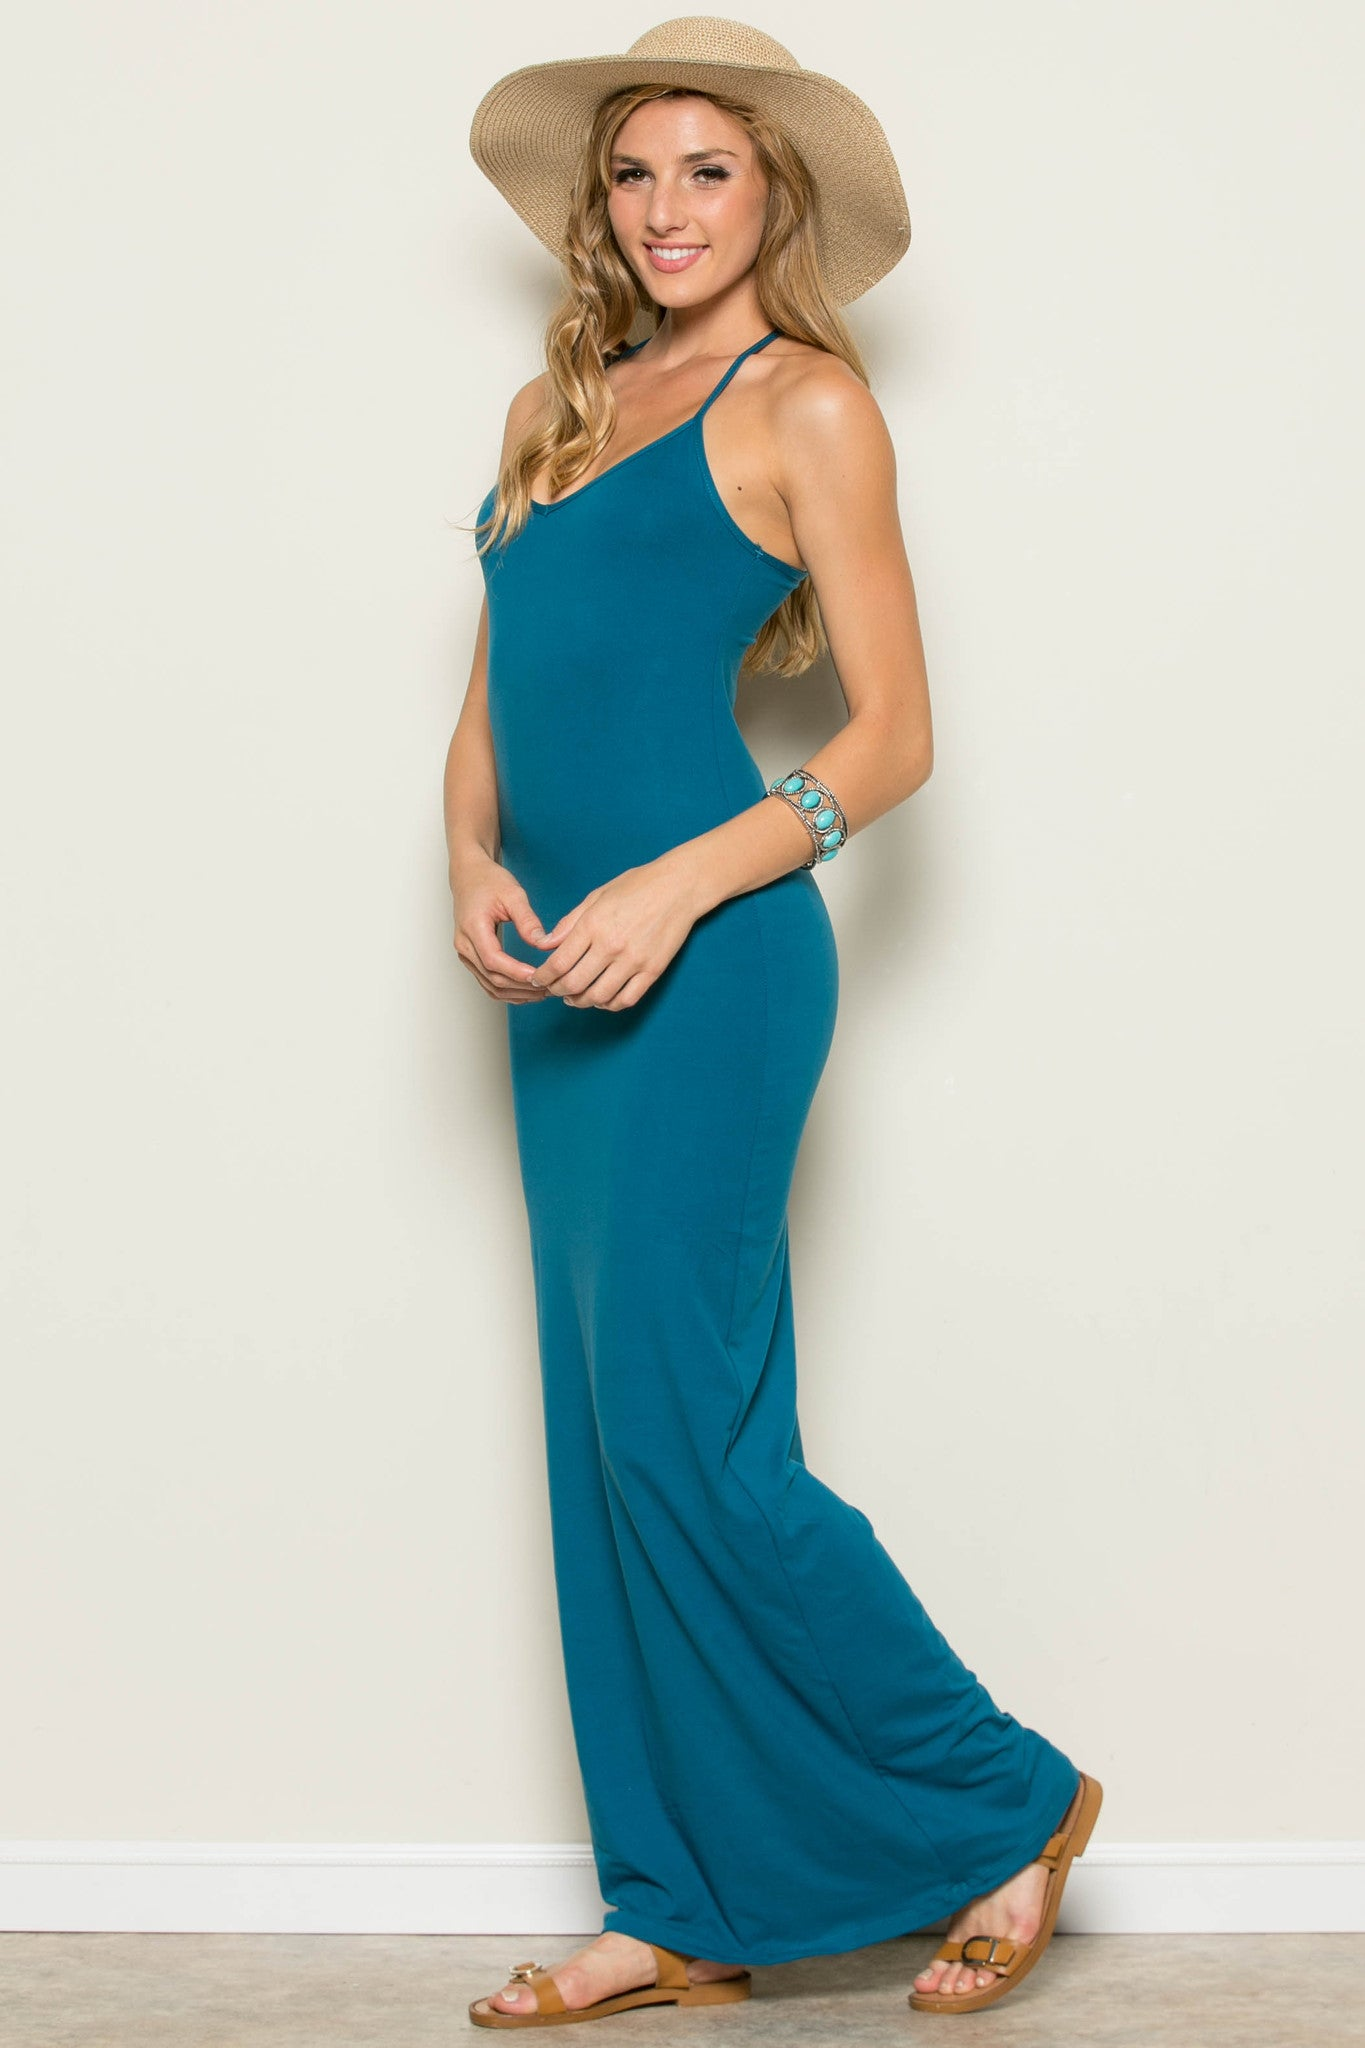 Micro Suede Teal Maxi Dress - Dresses - My Yuccie - 5